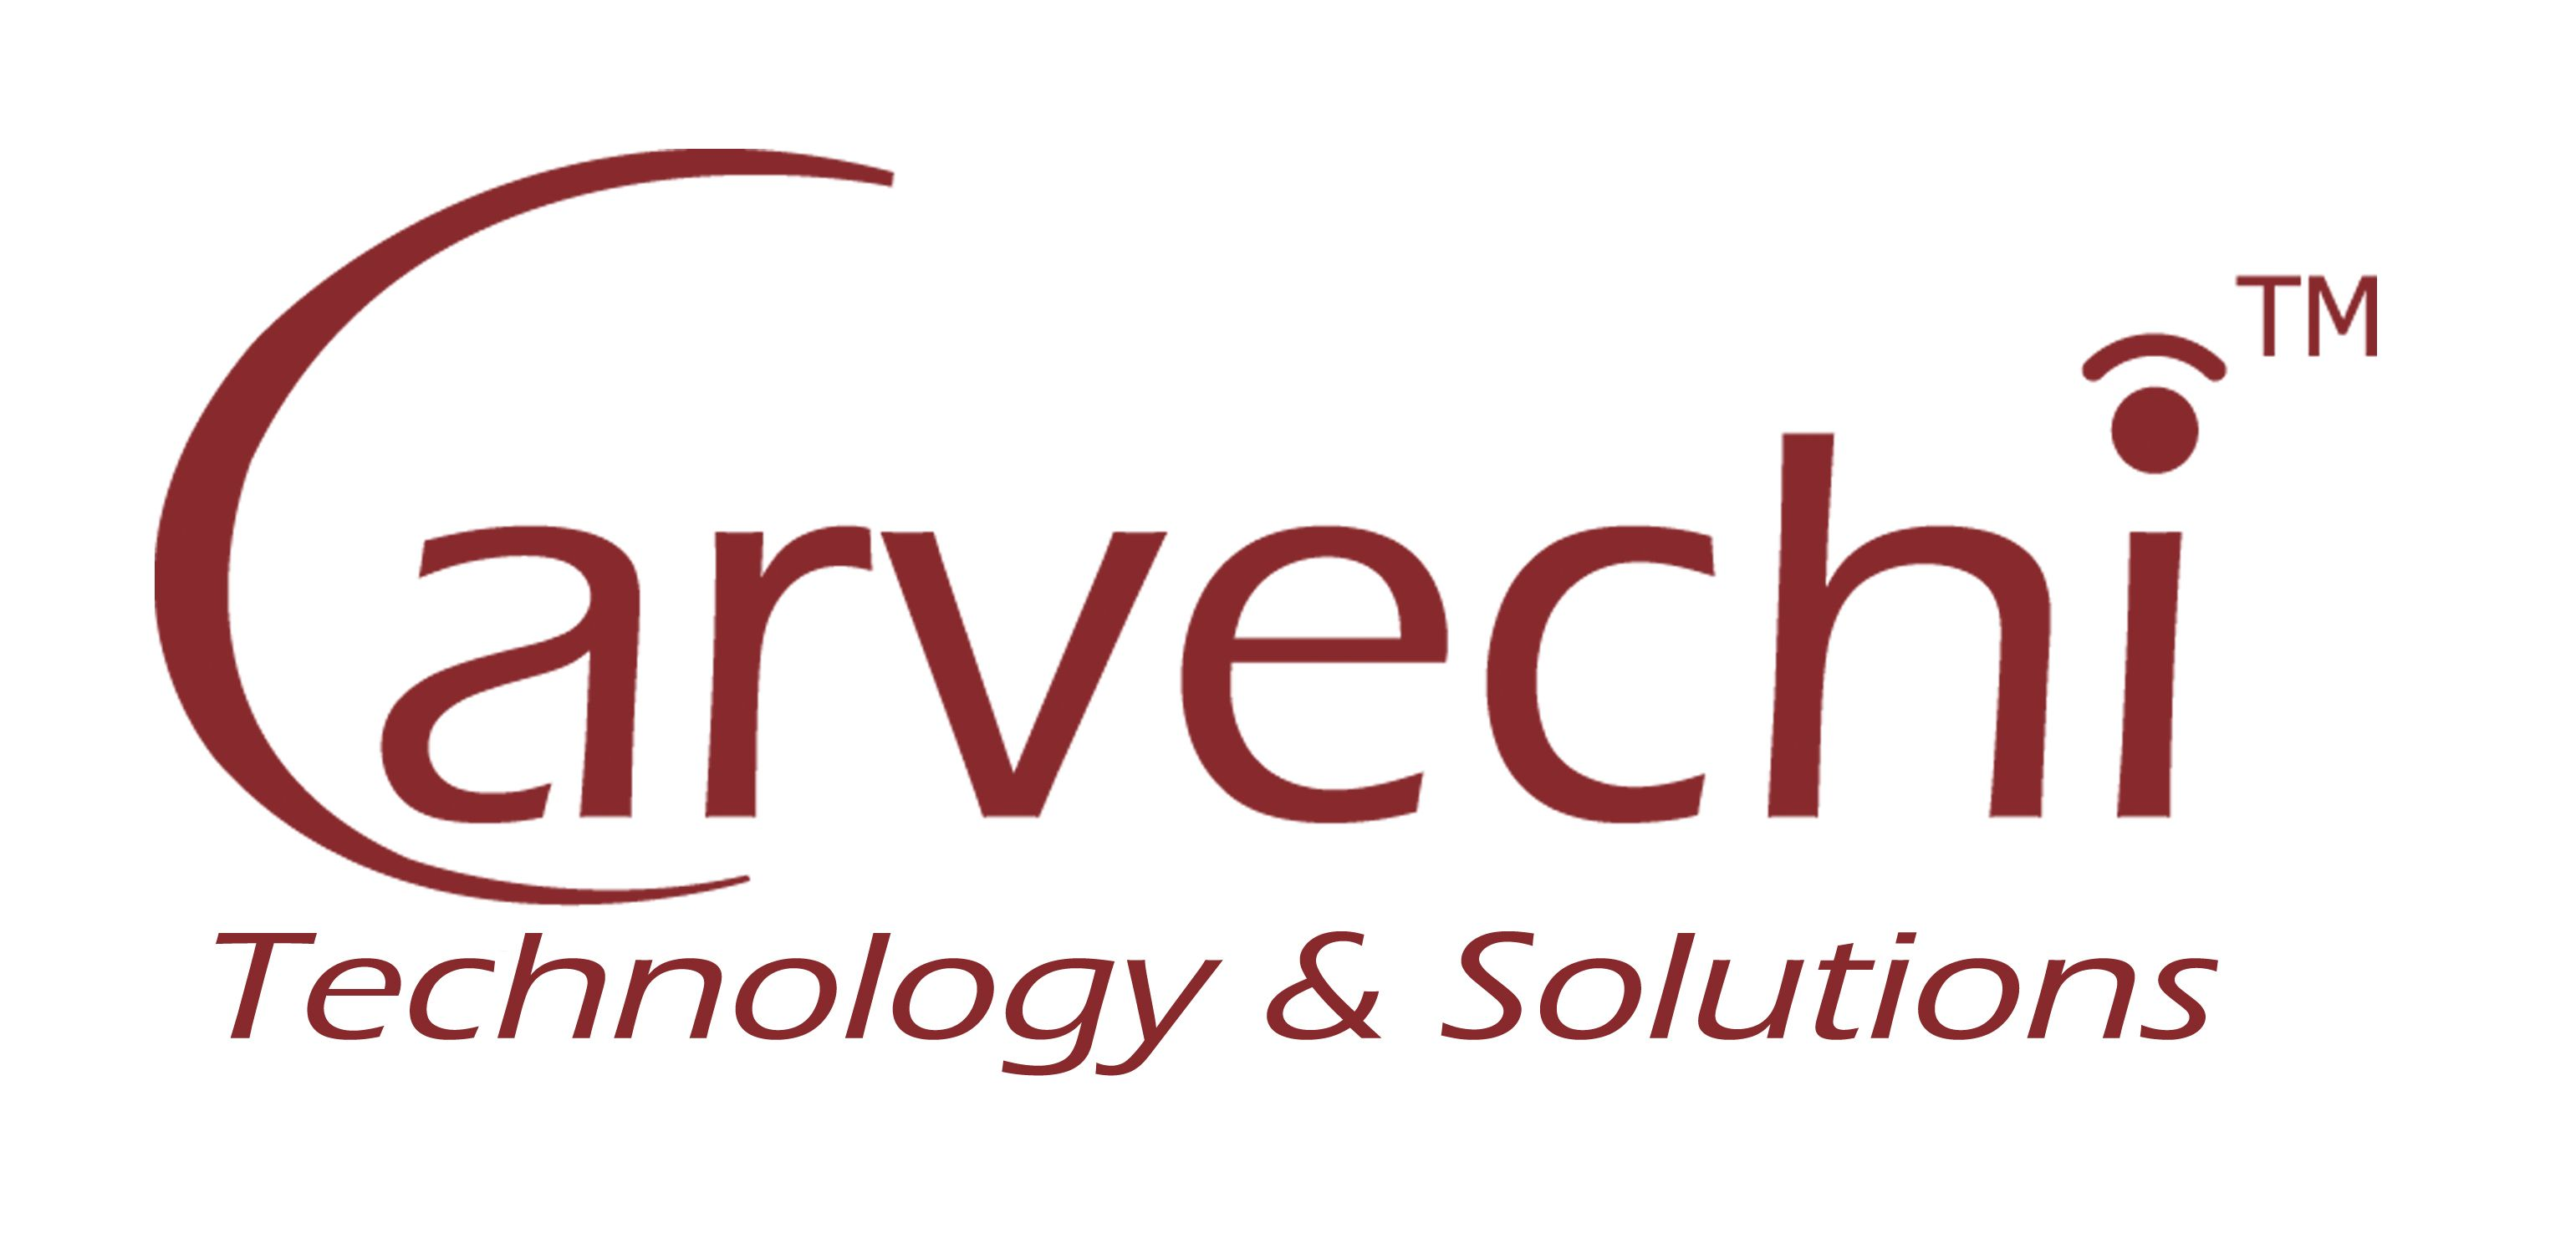 Carvechi Technology Announces a New Near Shore Development Center and Enhanced Hardware Service Offerings From Cisco and IBM